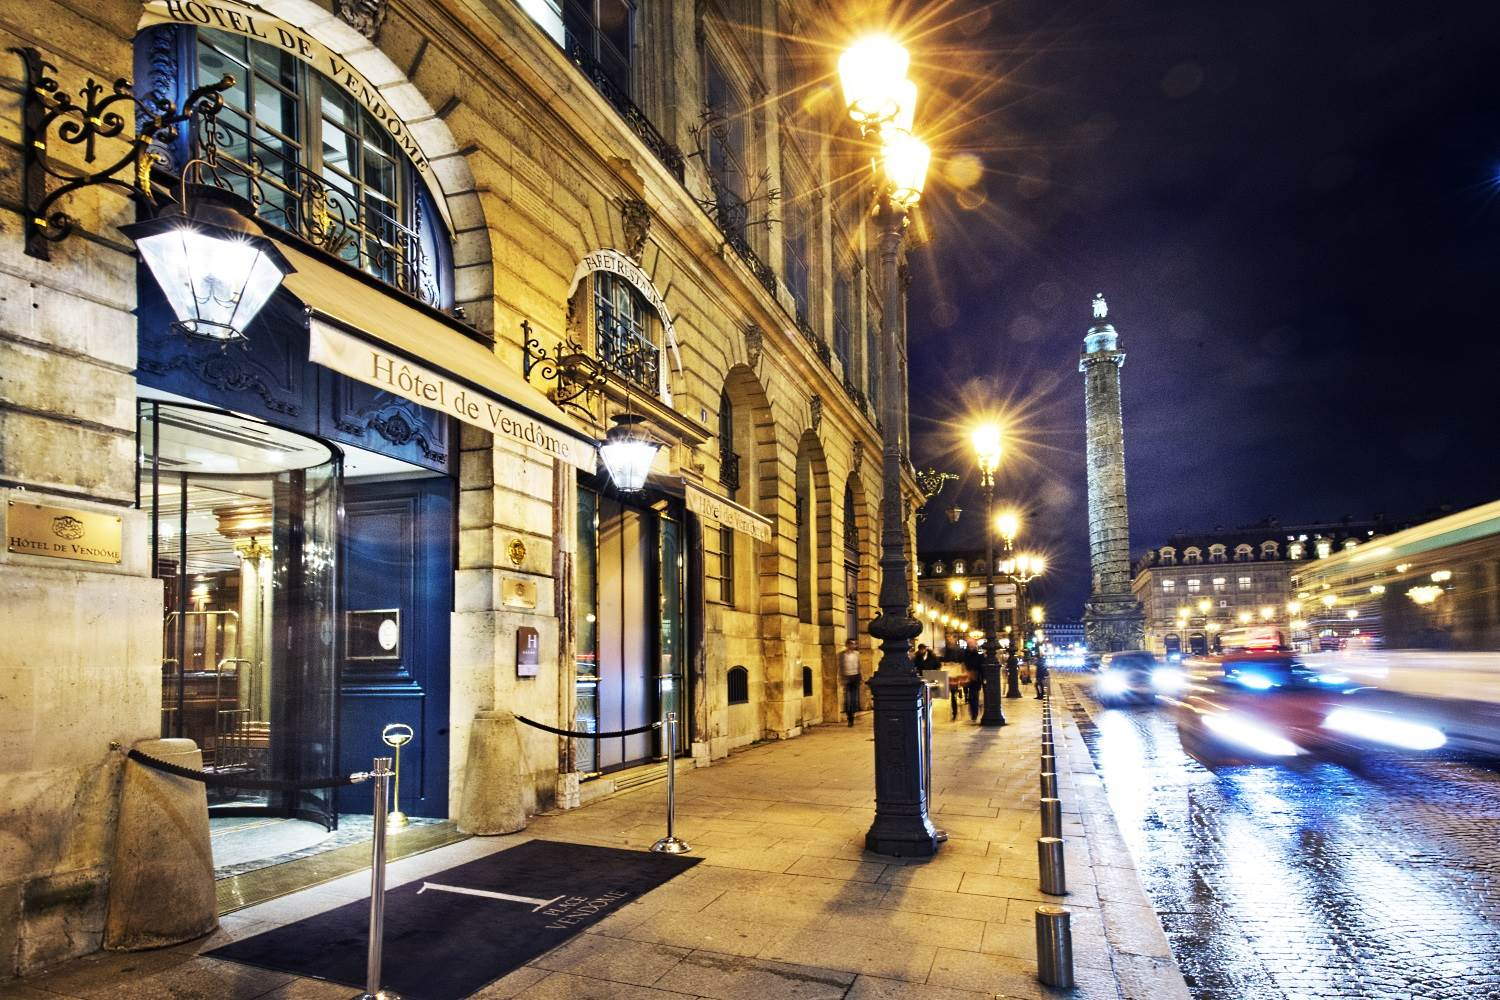 Hotel de Vendome Paris